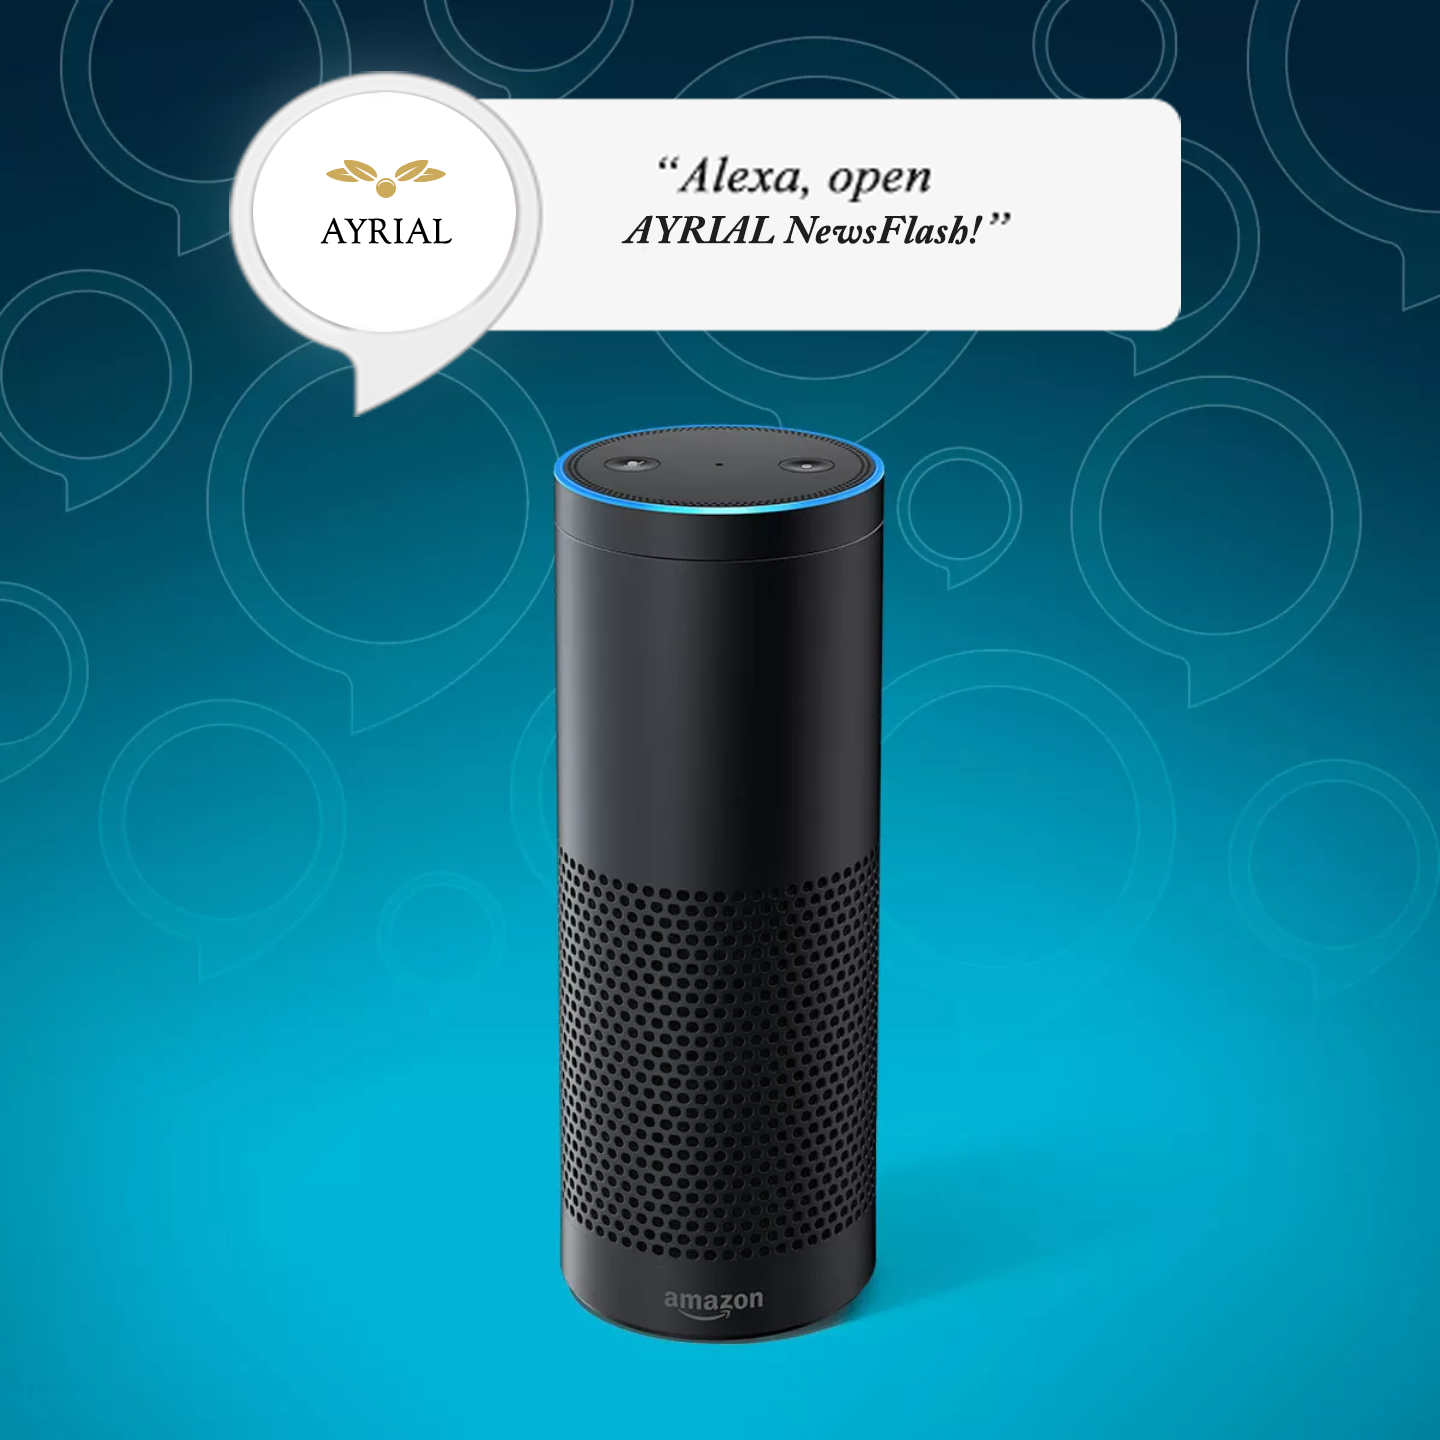 March 12-13 2018 AYRIAL NewsFlash Alexa Skill